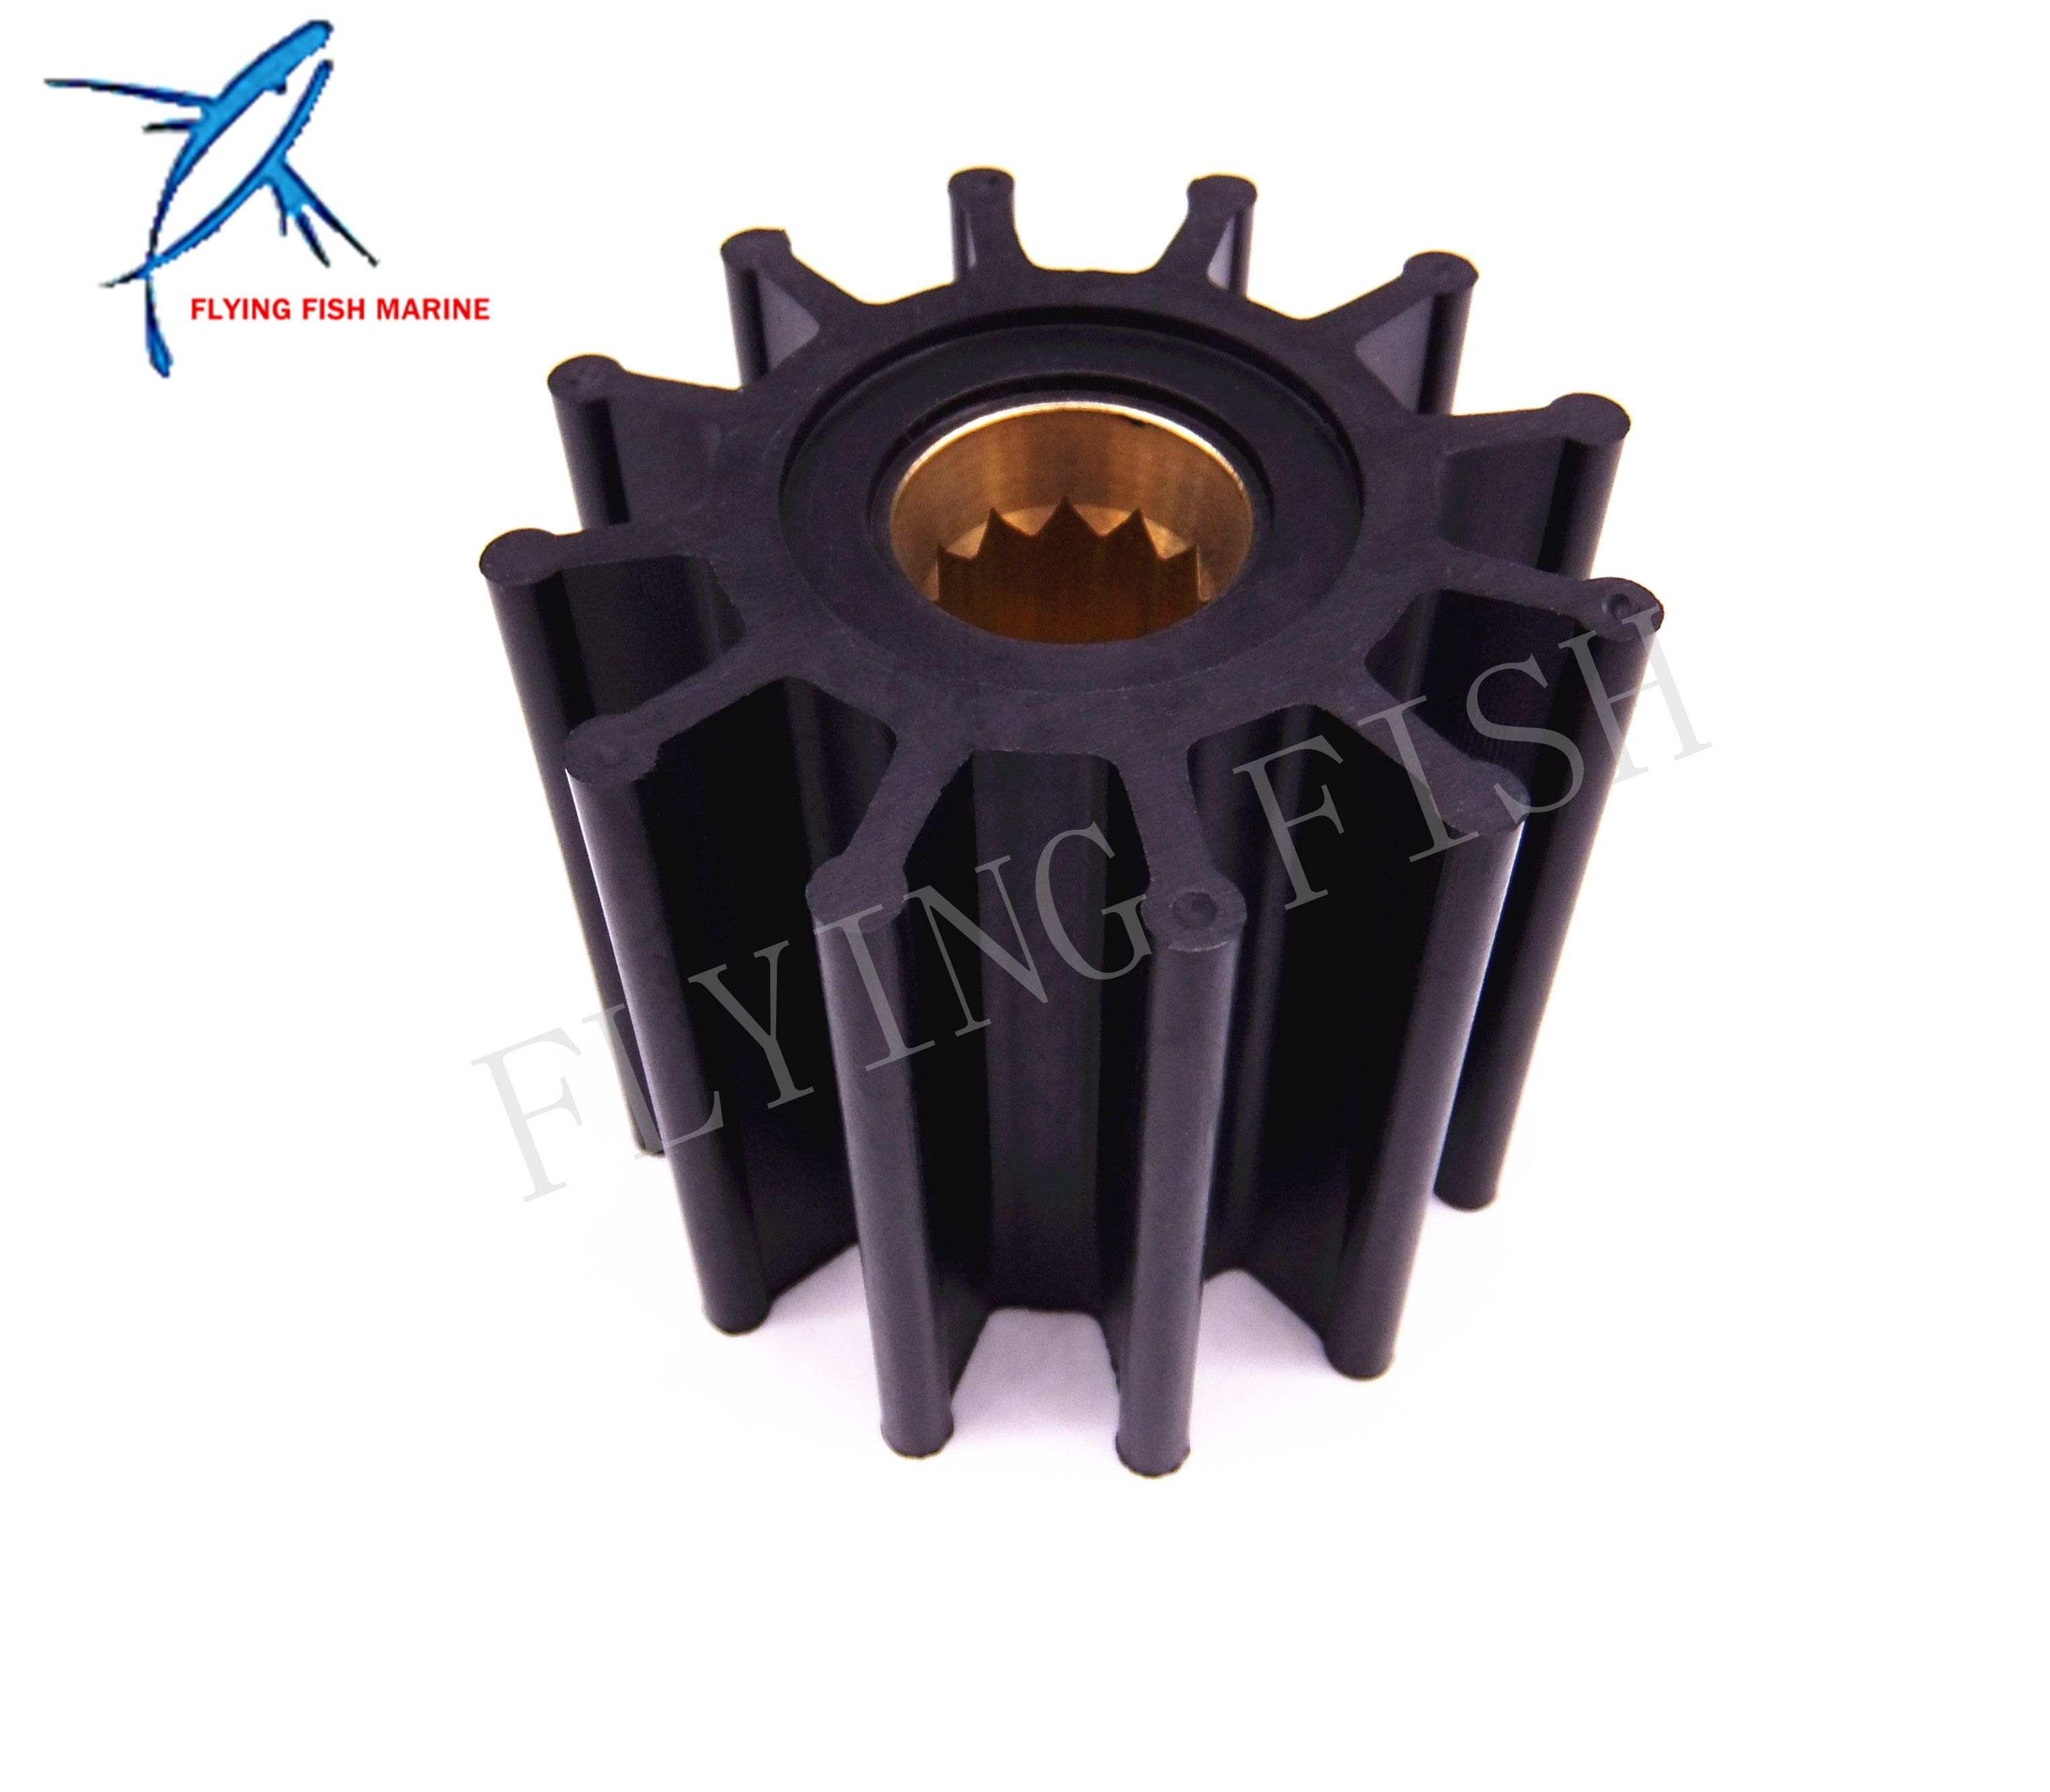 Water Pump Impeller Replacement for Yanmar Inboard Engines Parts 119773-42600